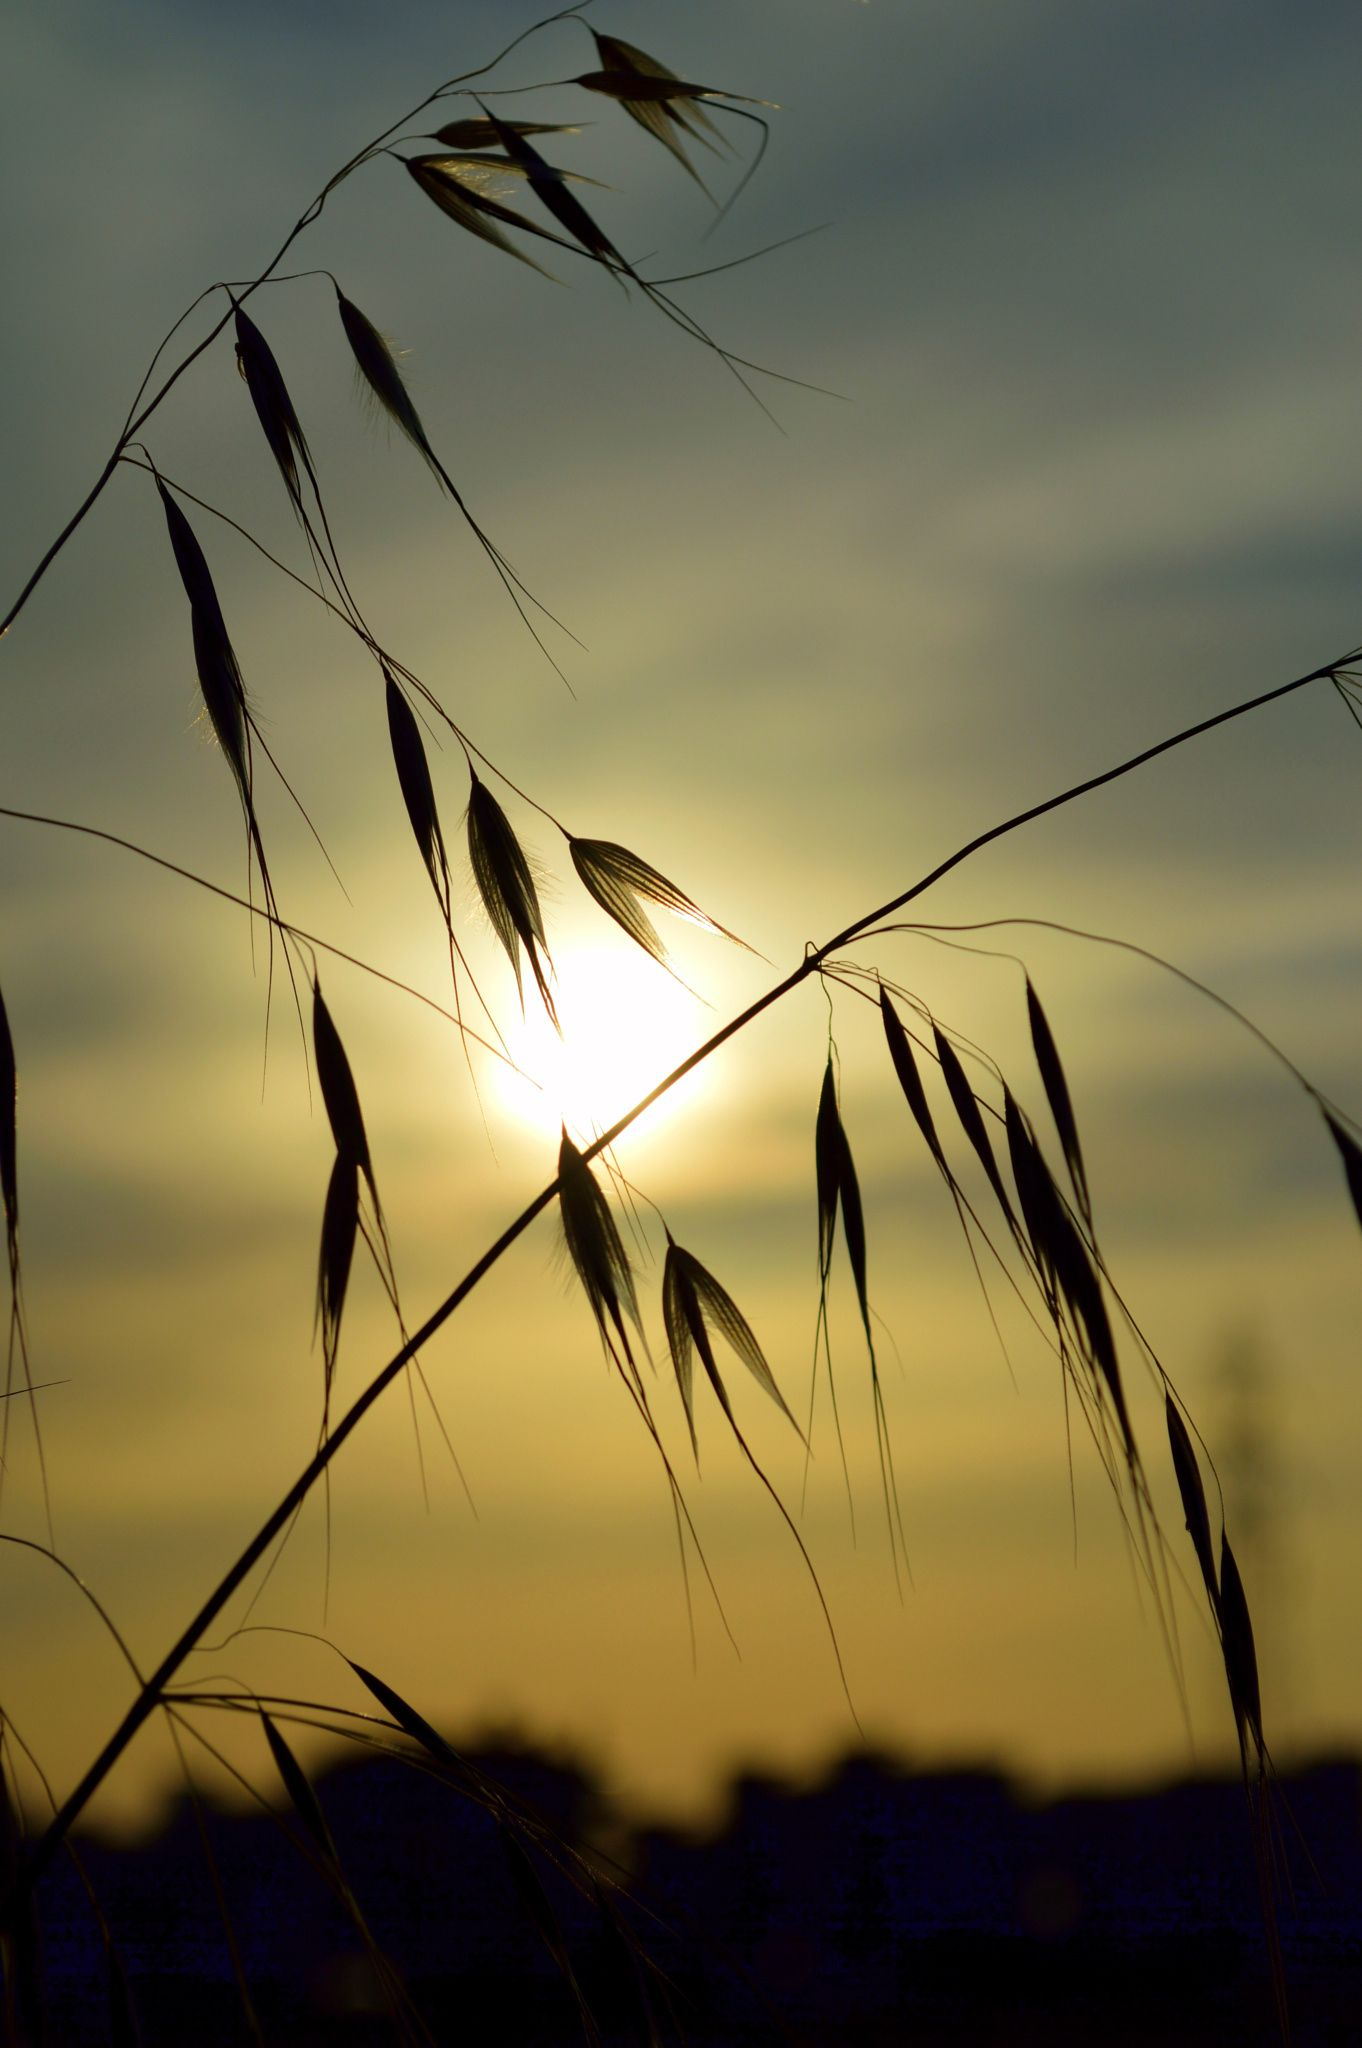 Photo Silhouettes of plants in the sunset by Papanikolaou Joanna on 500px